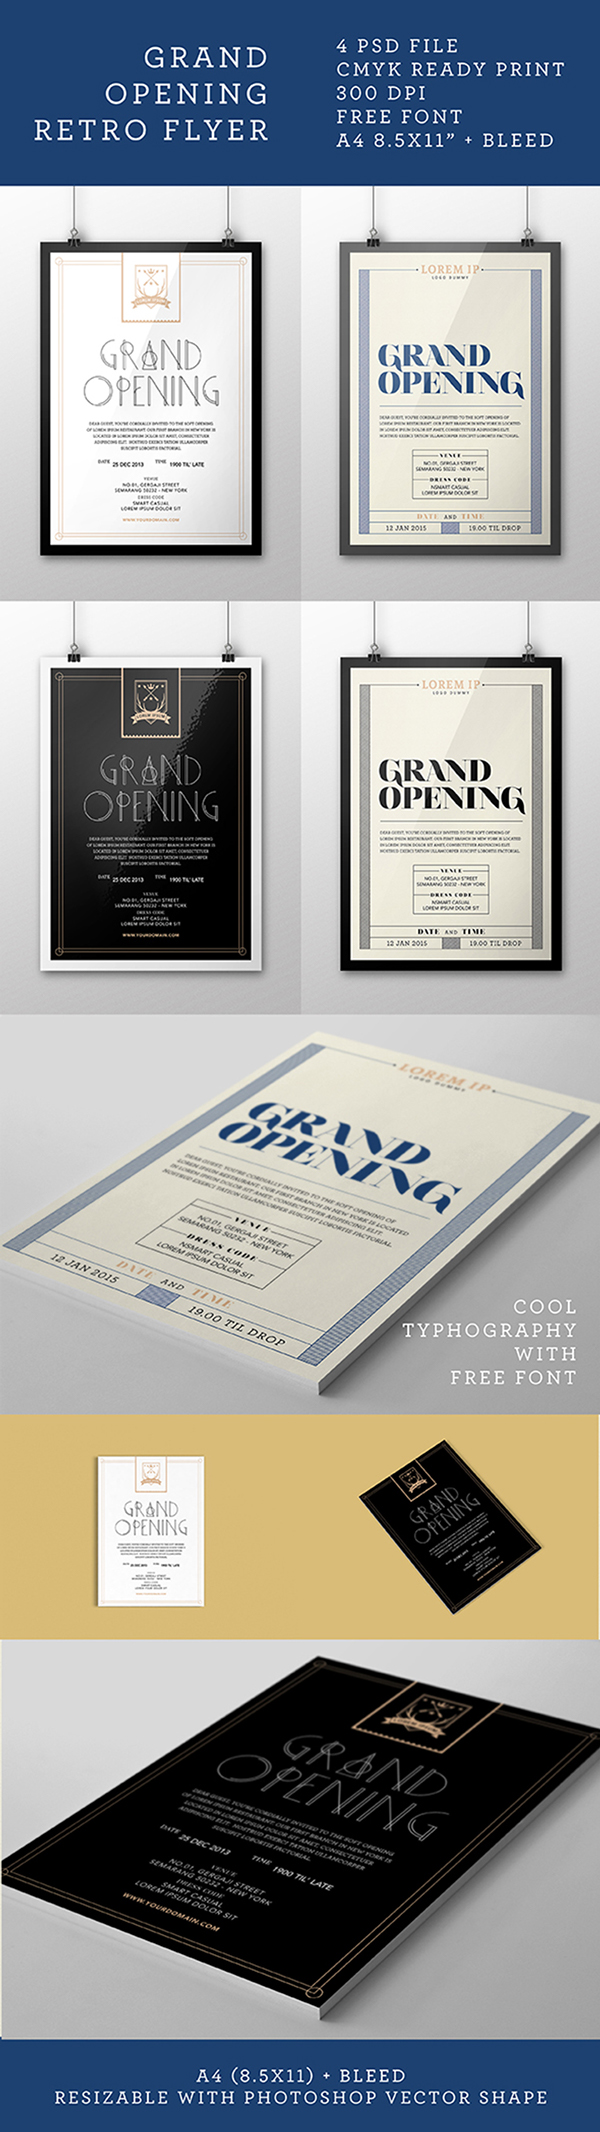 Free] Grand Opening Flyer on Behance | inspiration for others\' work ...